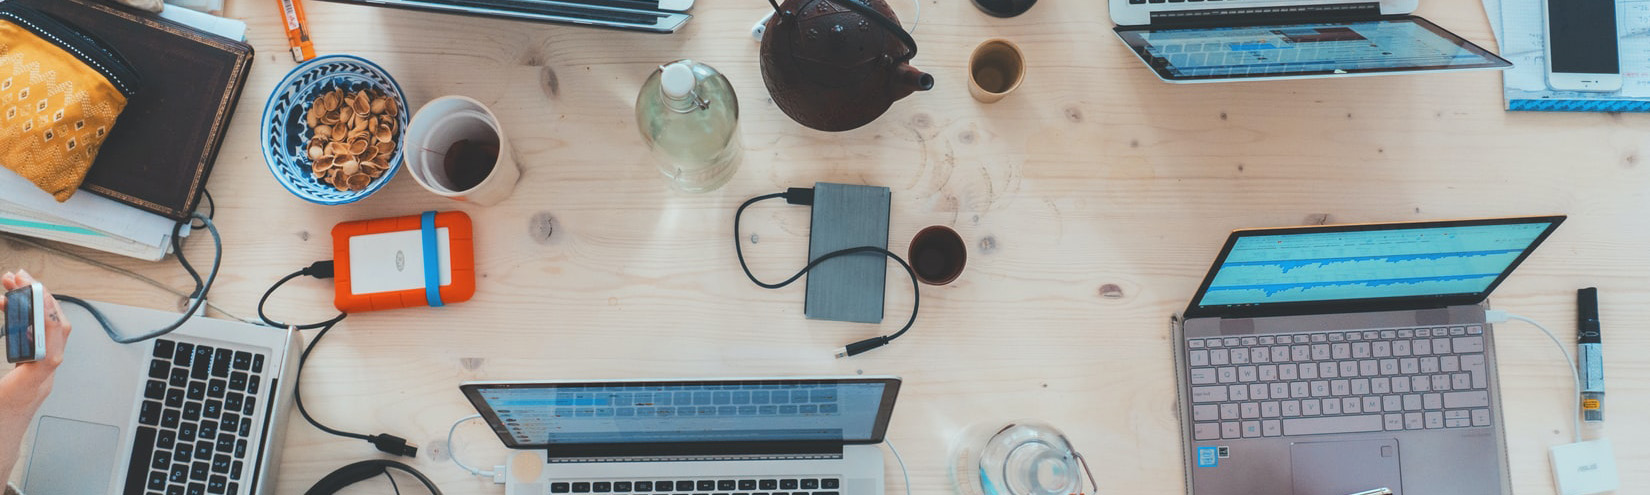 Tips to Keep Your Remote Team Digitally Connected